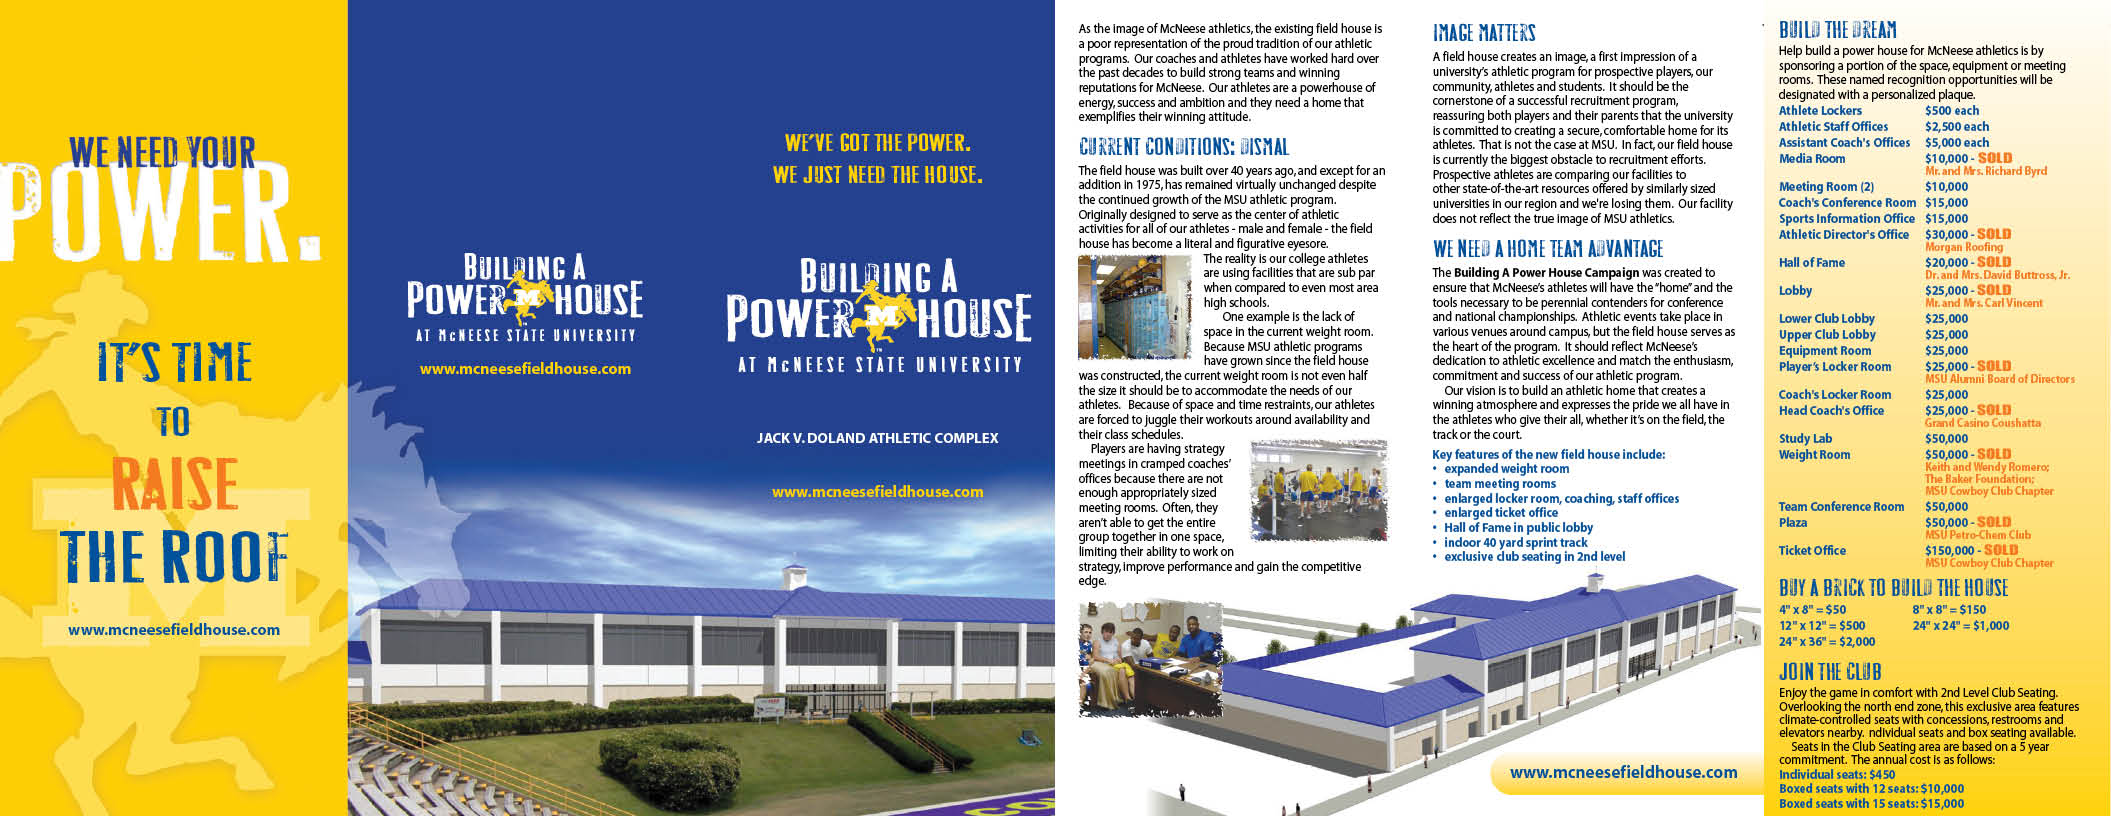 McNeese State University - PowerHouse - Brochure Design